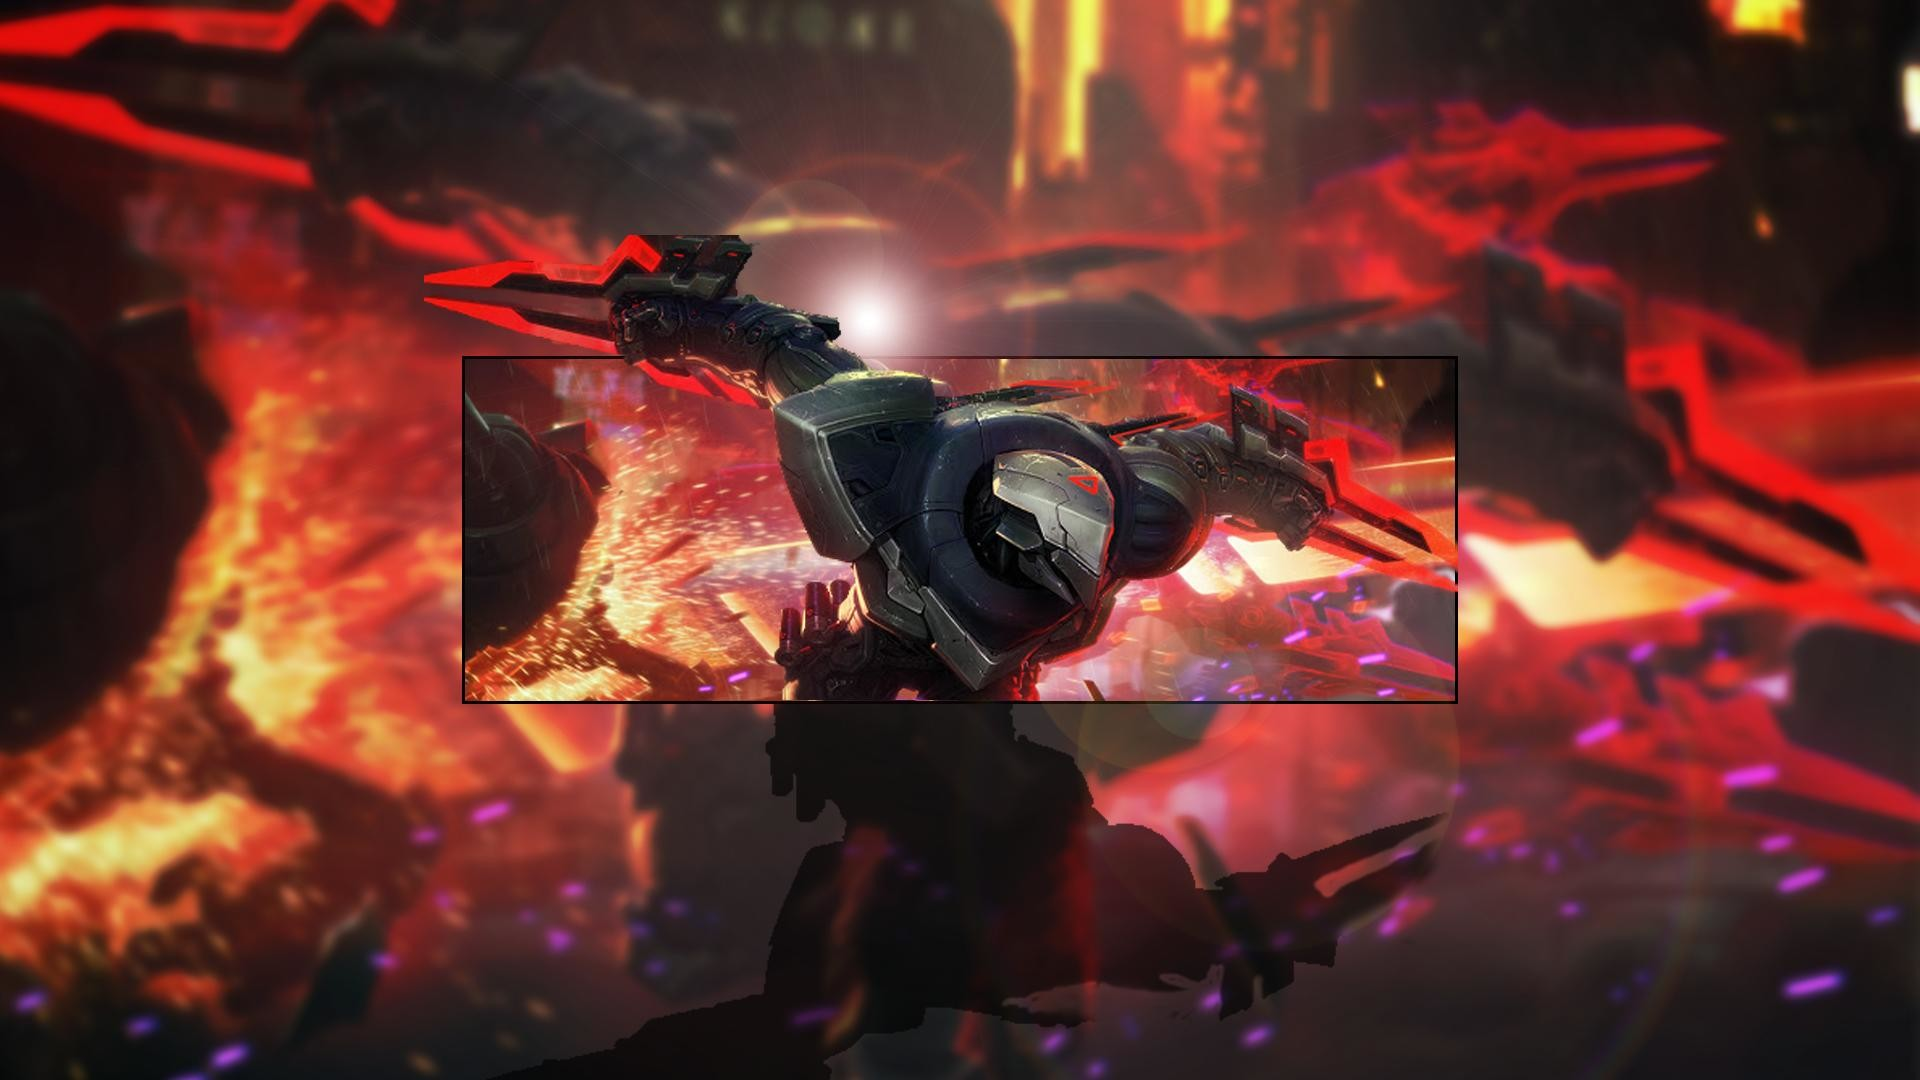 I separated Zed from his new PROJECT splash : leagueoflegends